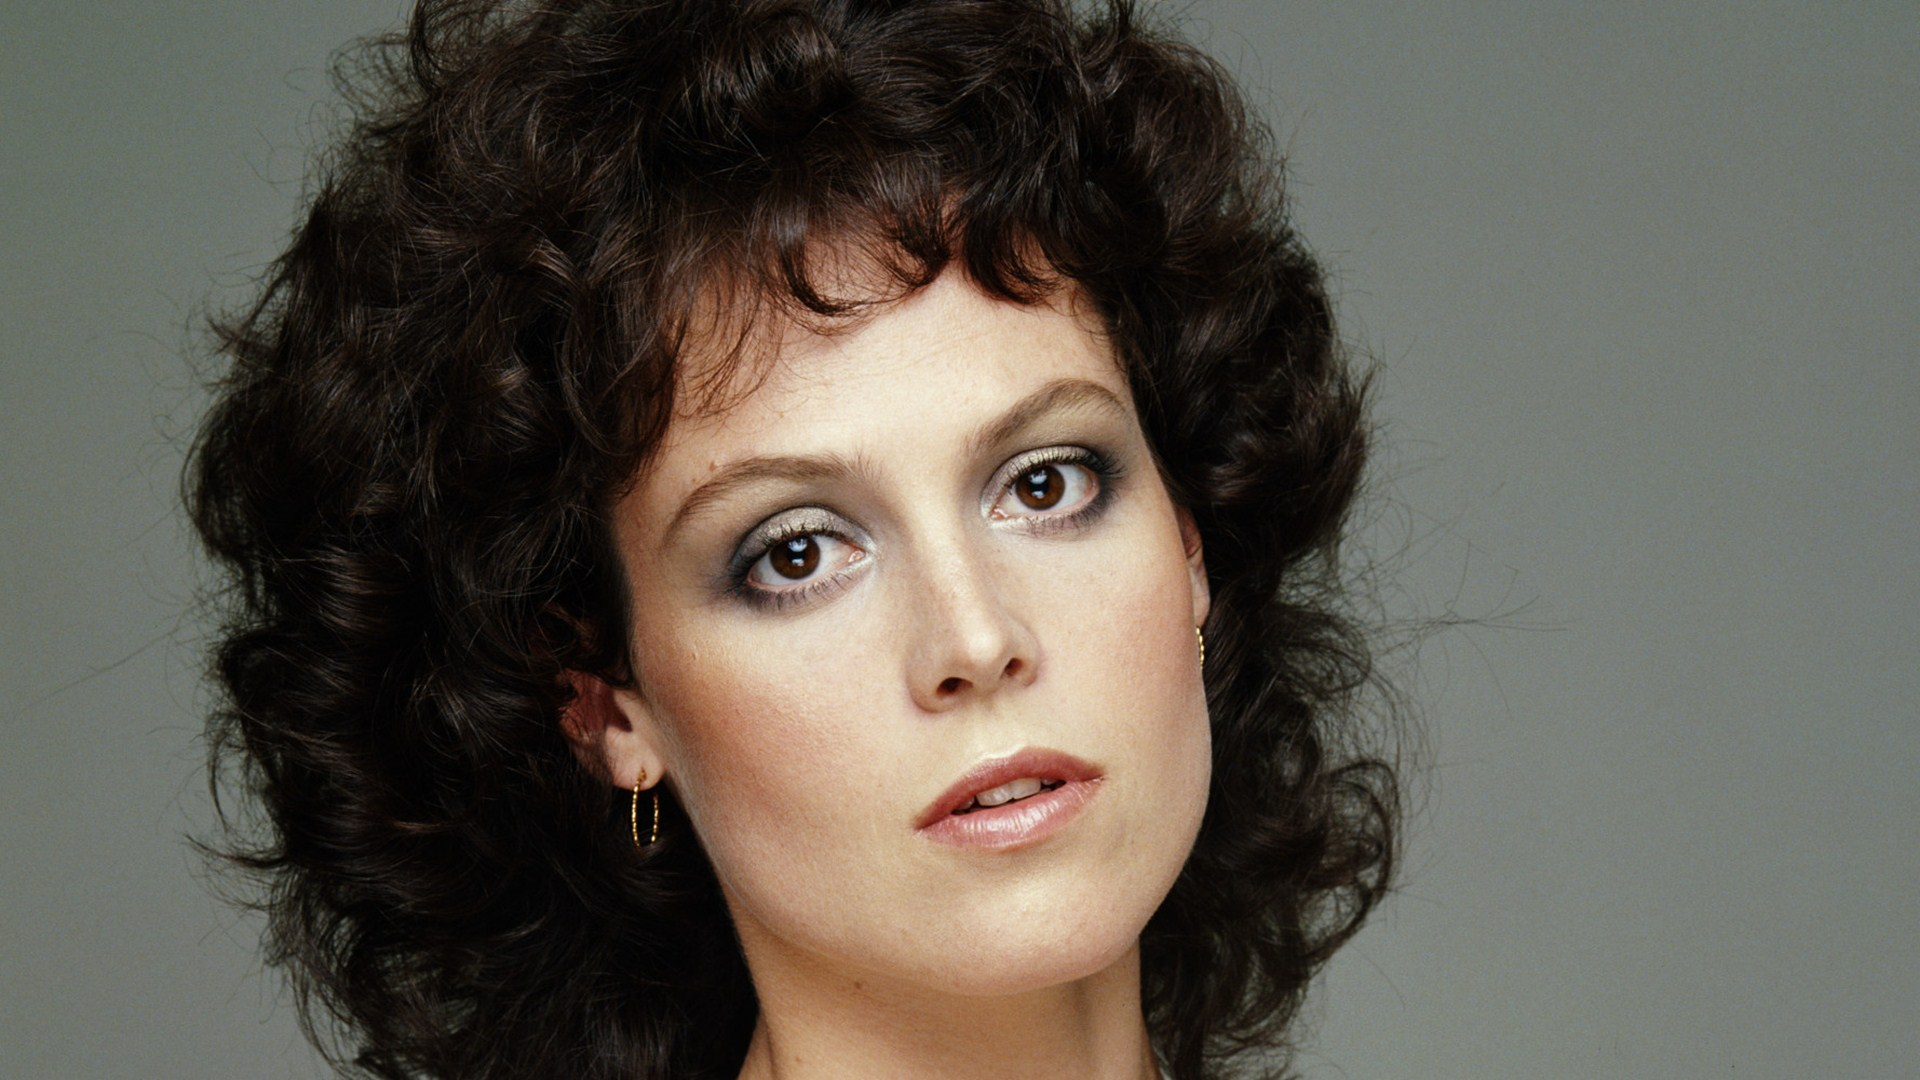 Sigourney Weaver Wallpapers High Quality Download Free